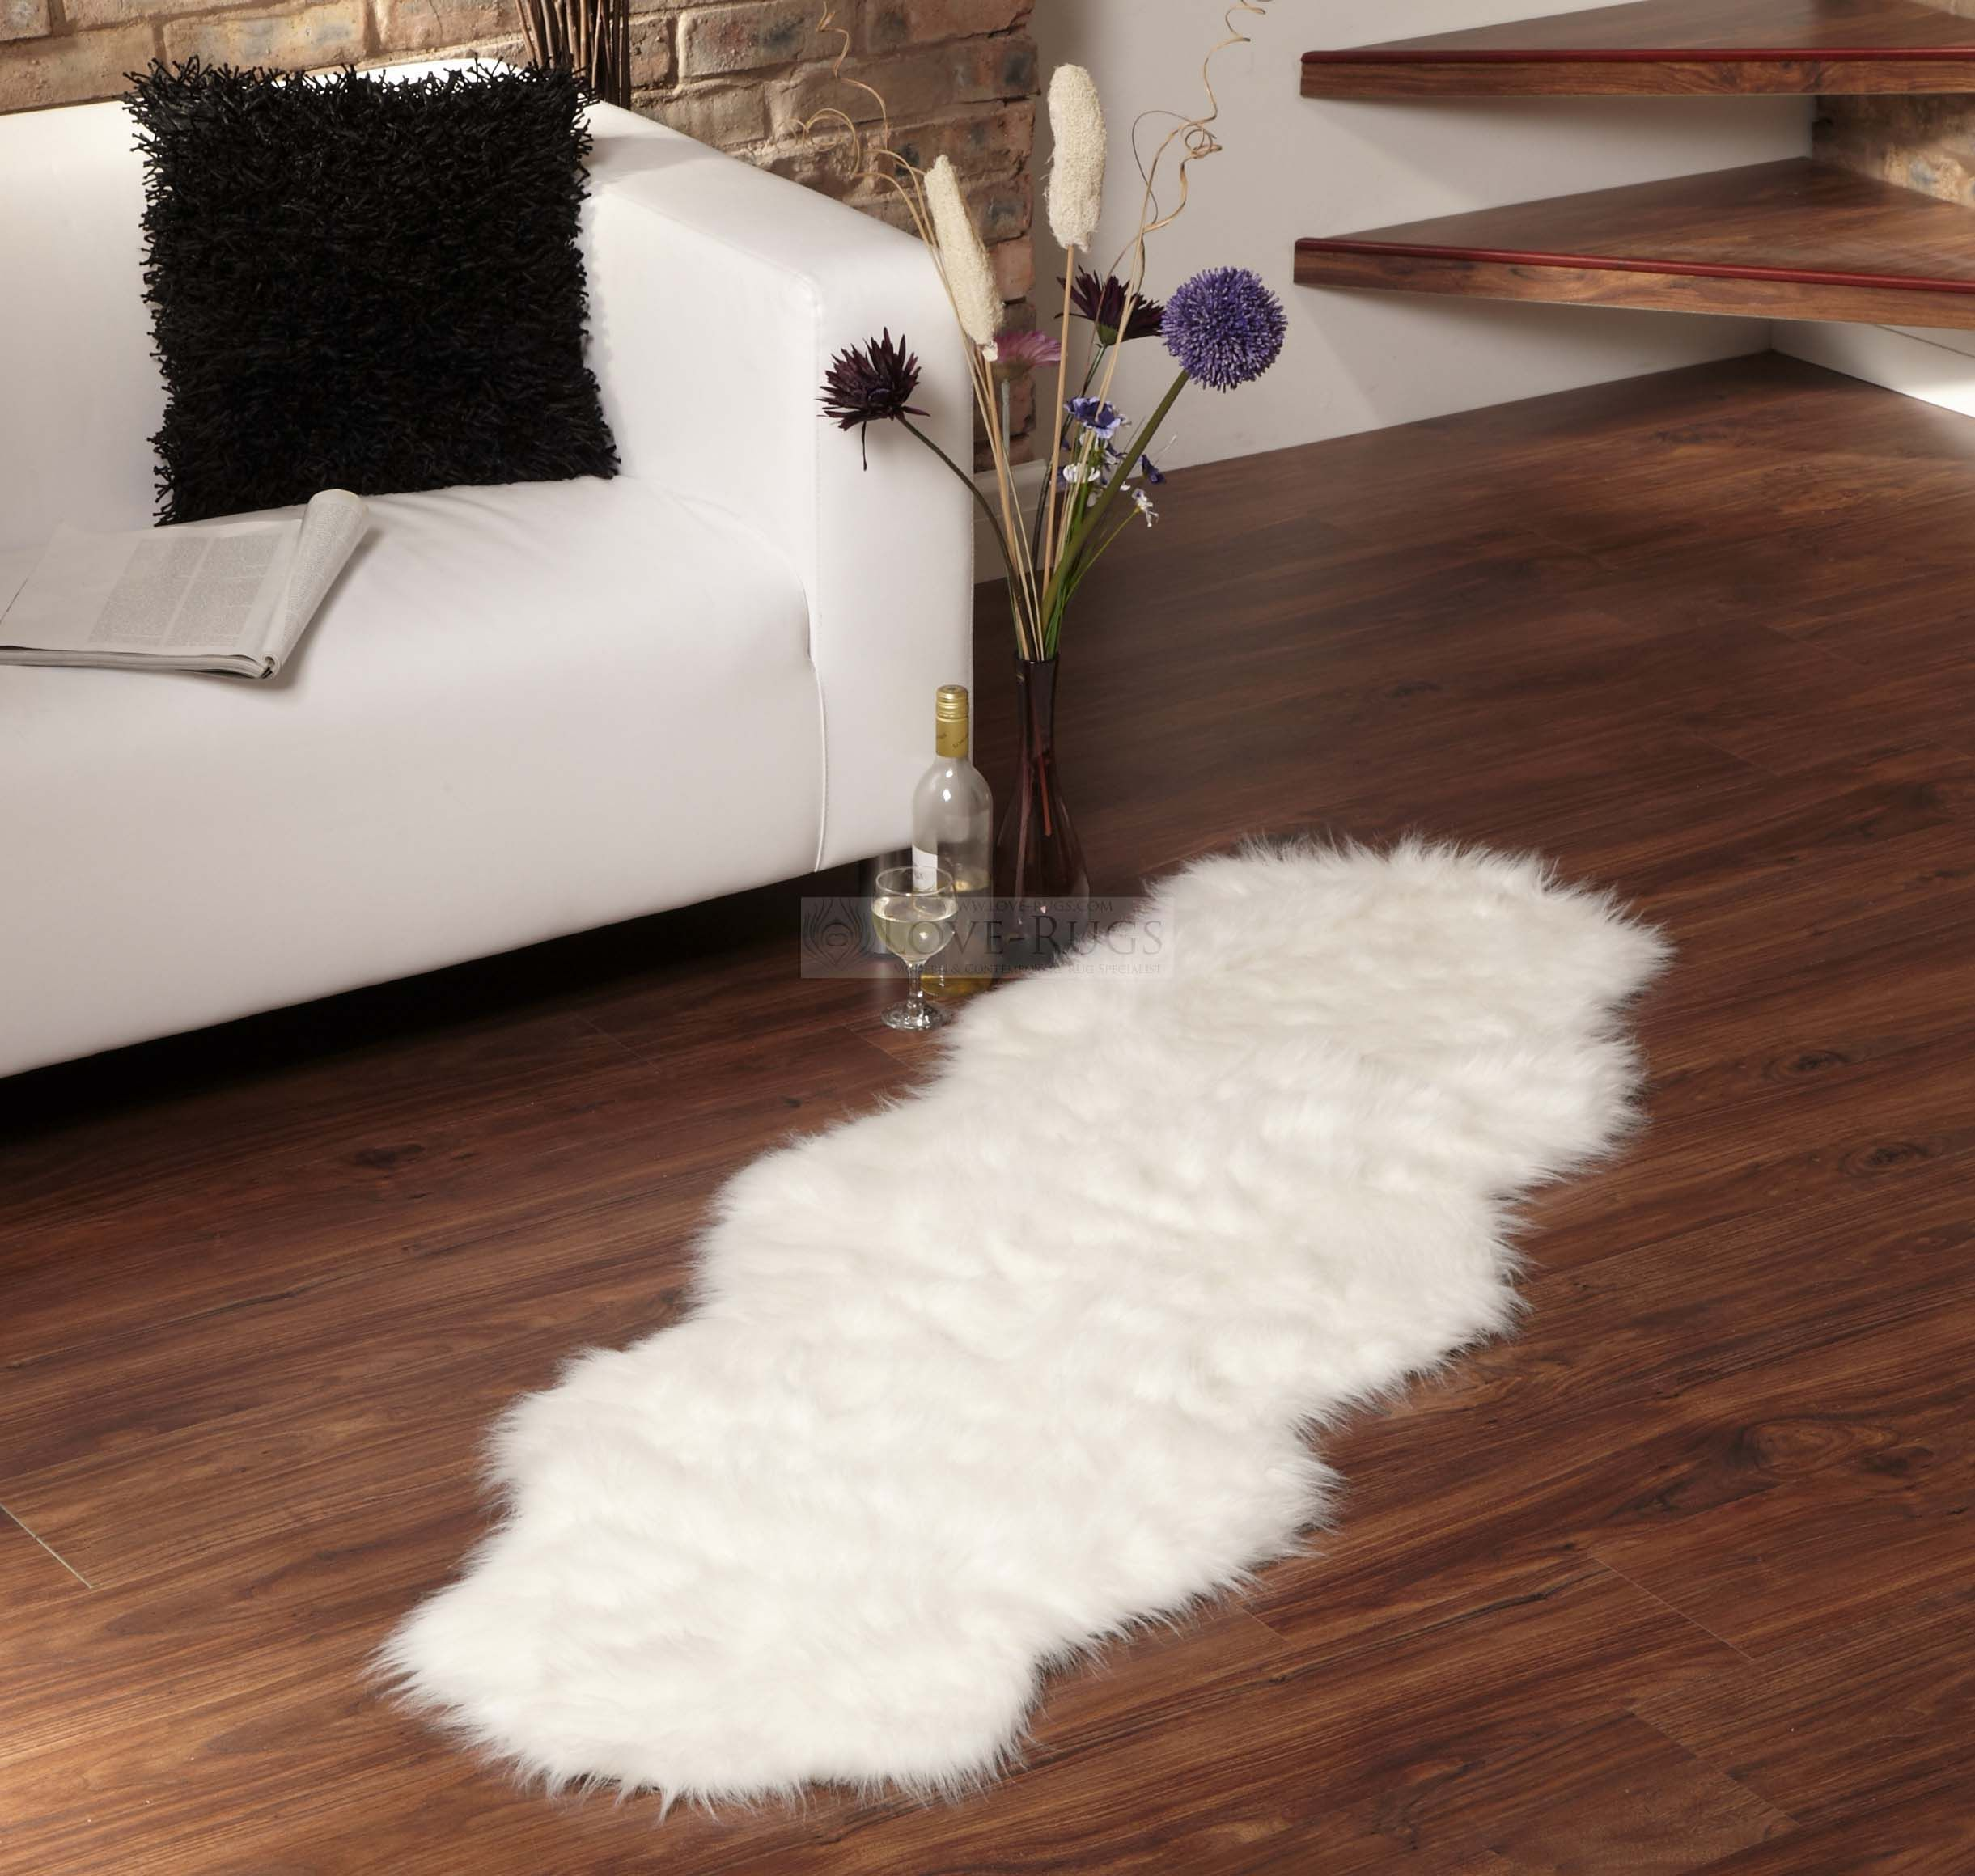 fy Faux Sheepskin Rug for Floor Decor Ideas Faux Sheepskin Rug